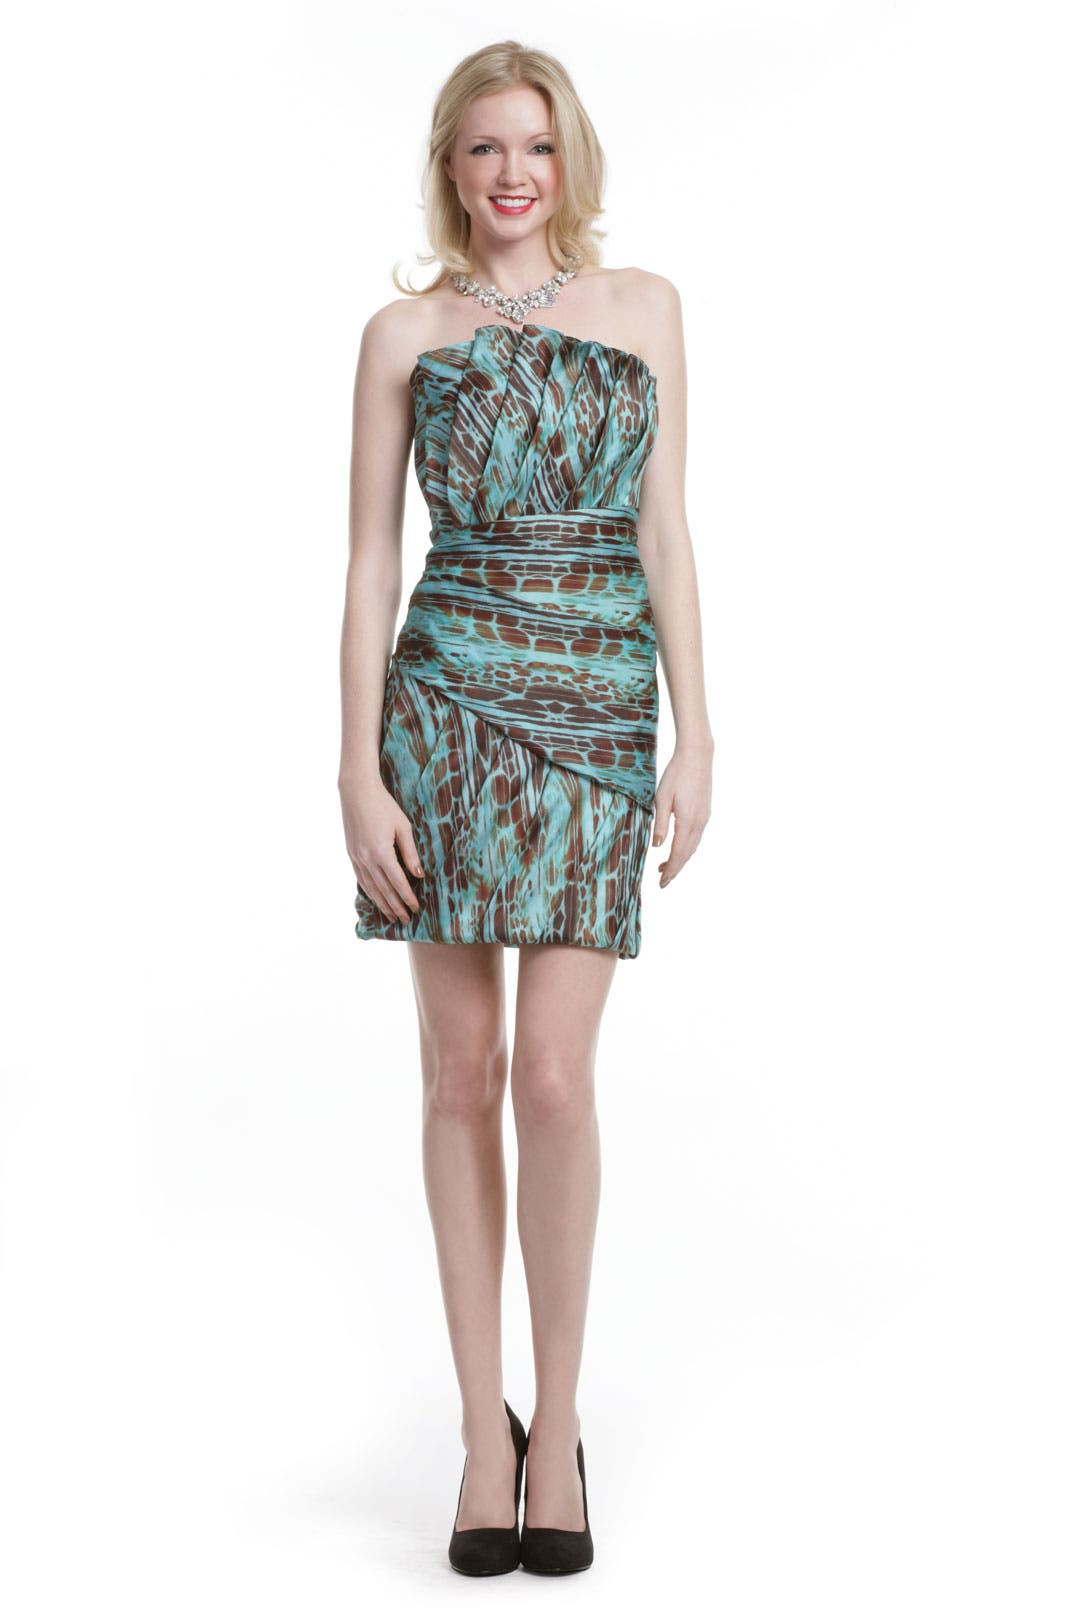 Turquoise Ruffle Dress by Christian Siriano